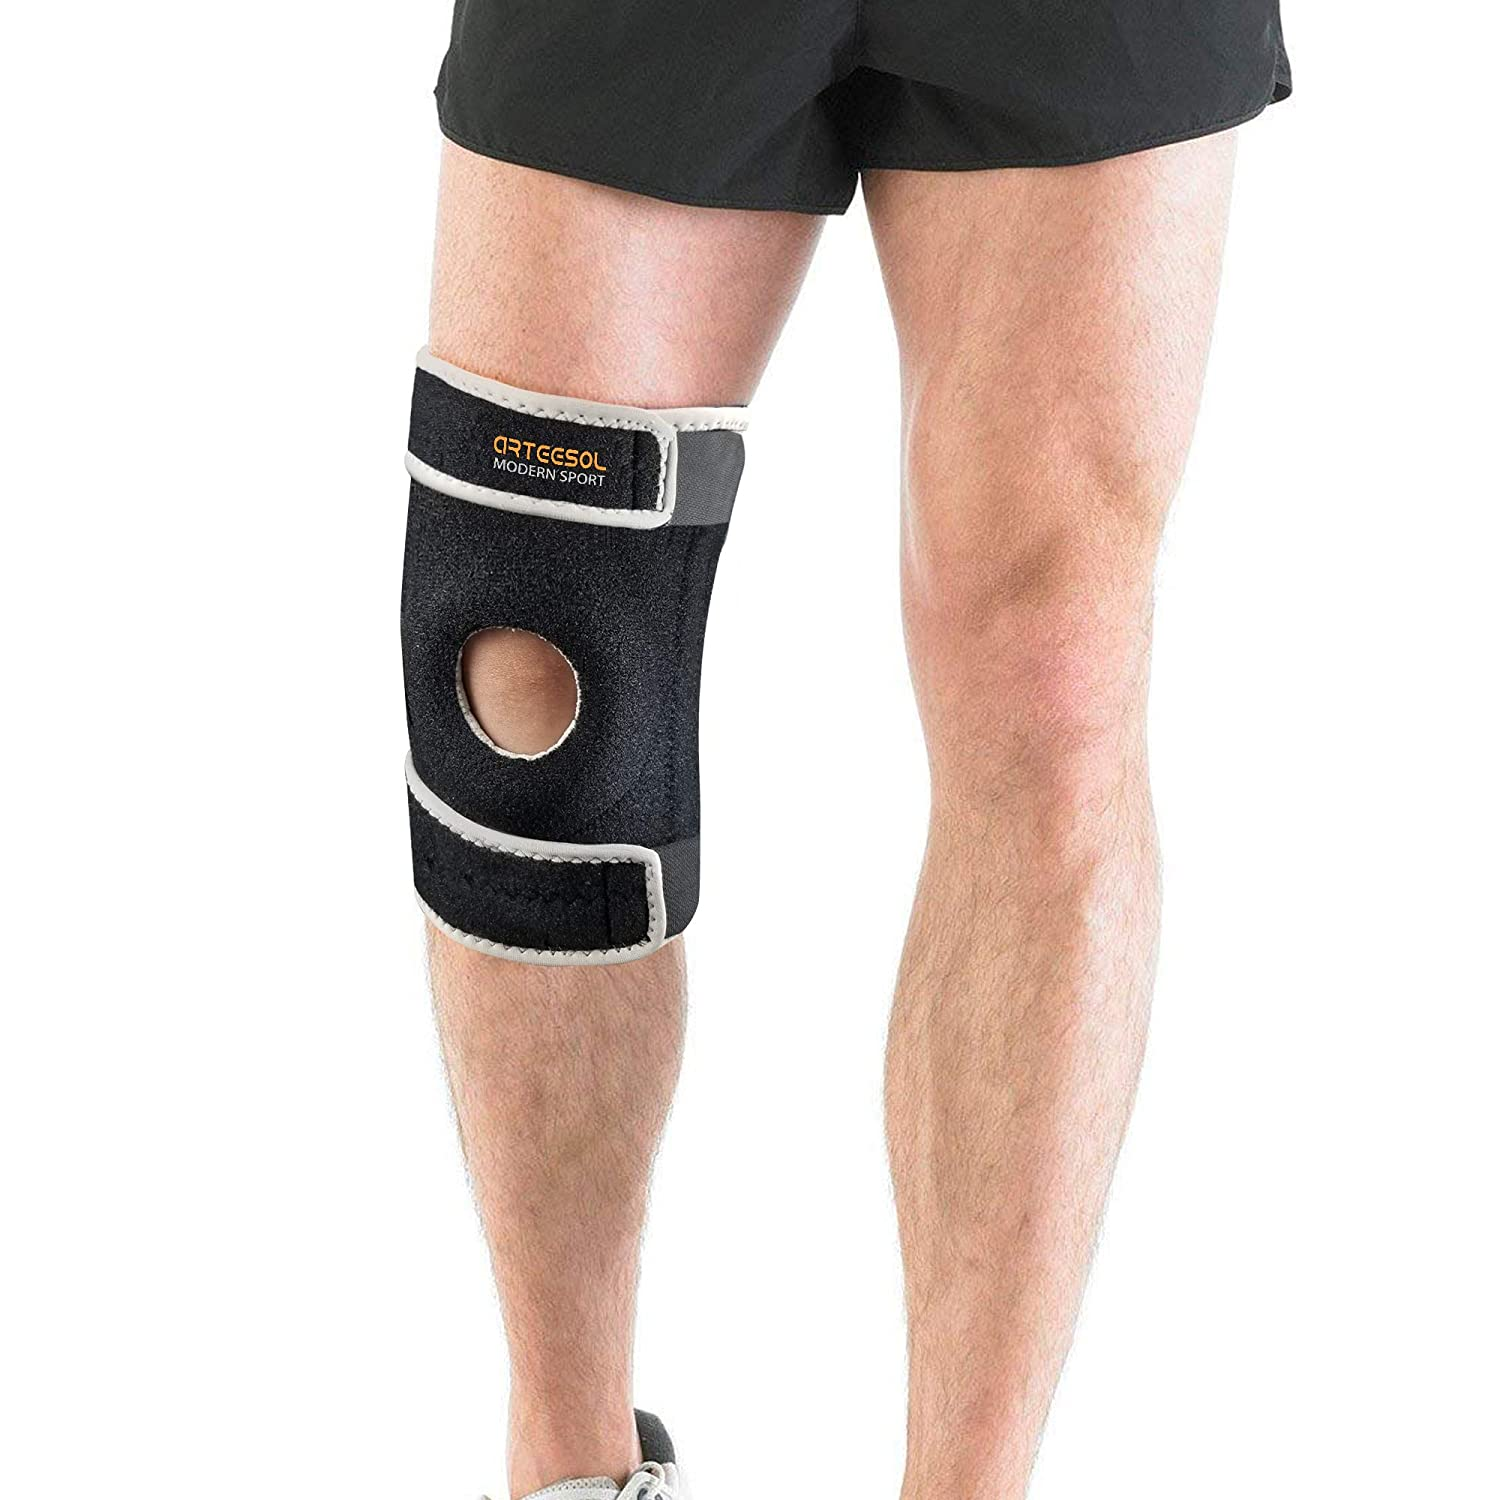 Sports Injury Rehabilitation /& Protection VIPFAN Knee Support Adjustable Kneepad Brace 1 Pair for Running Walking Cycling Basketball and Knee Safety Pain Relief